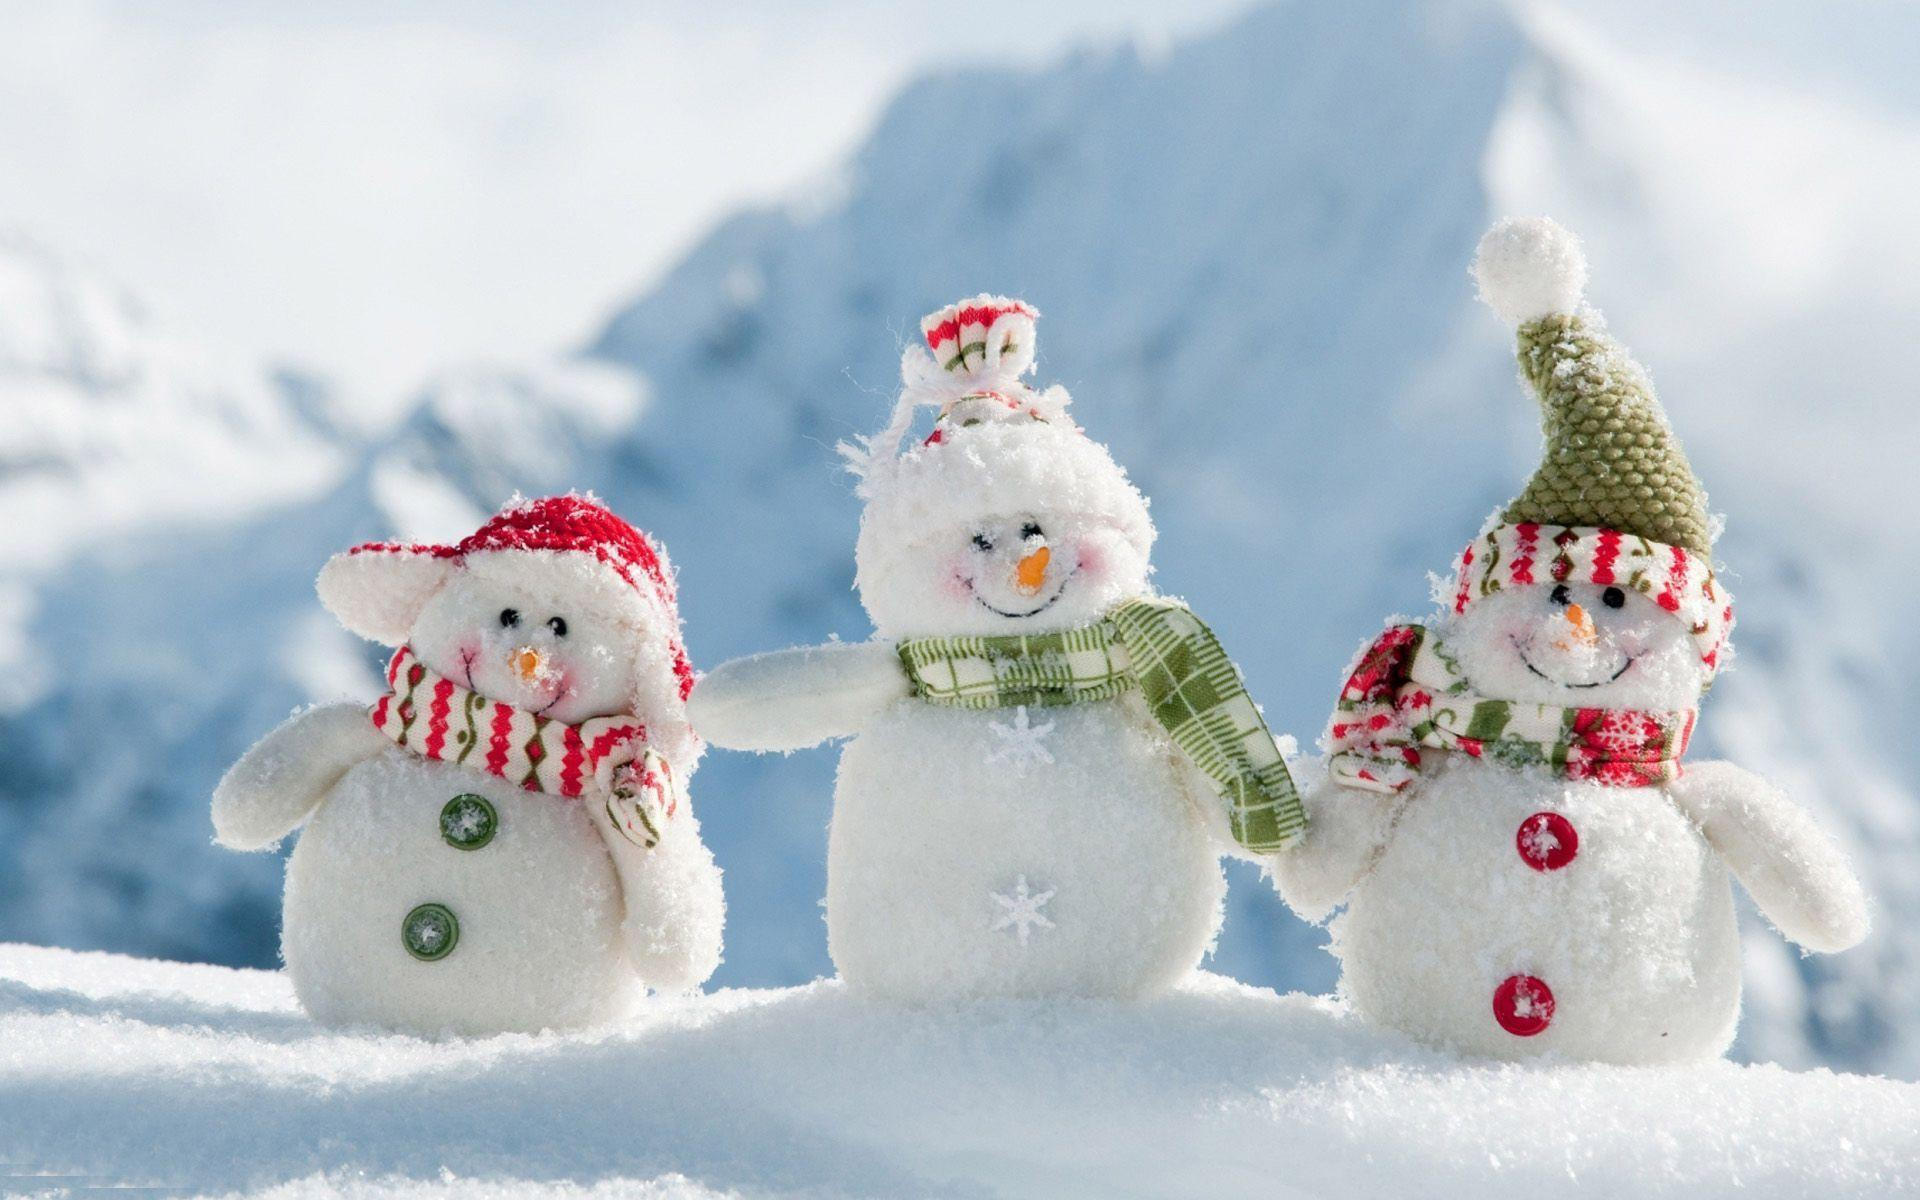 snowman family wallpaper - photo #31